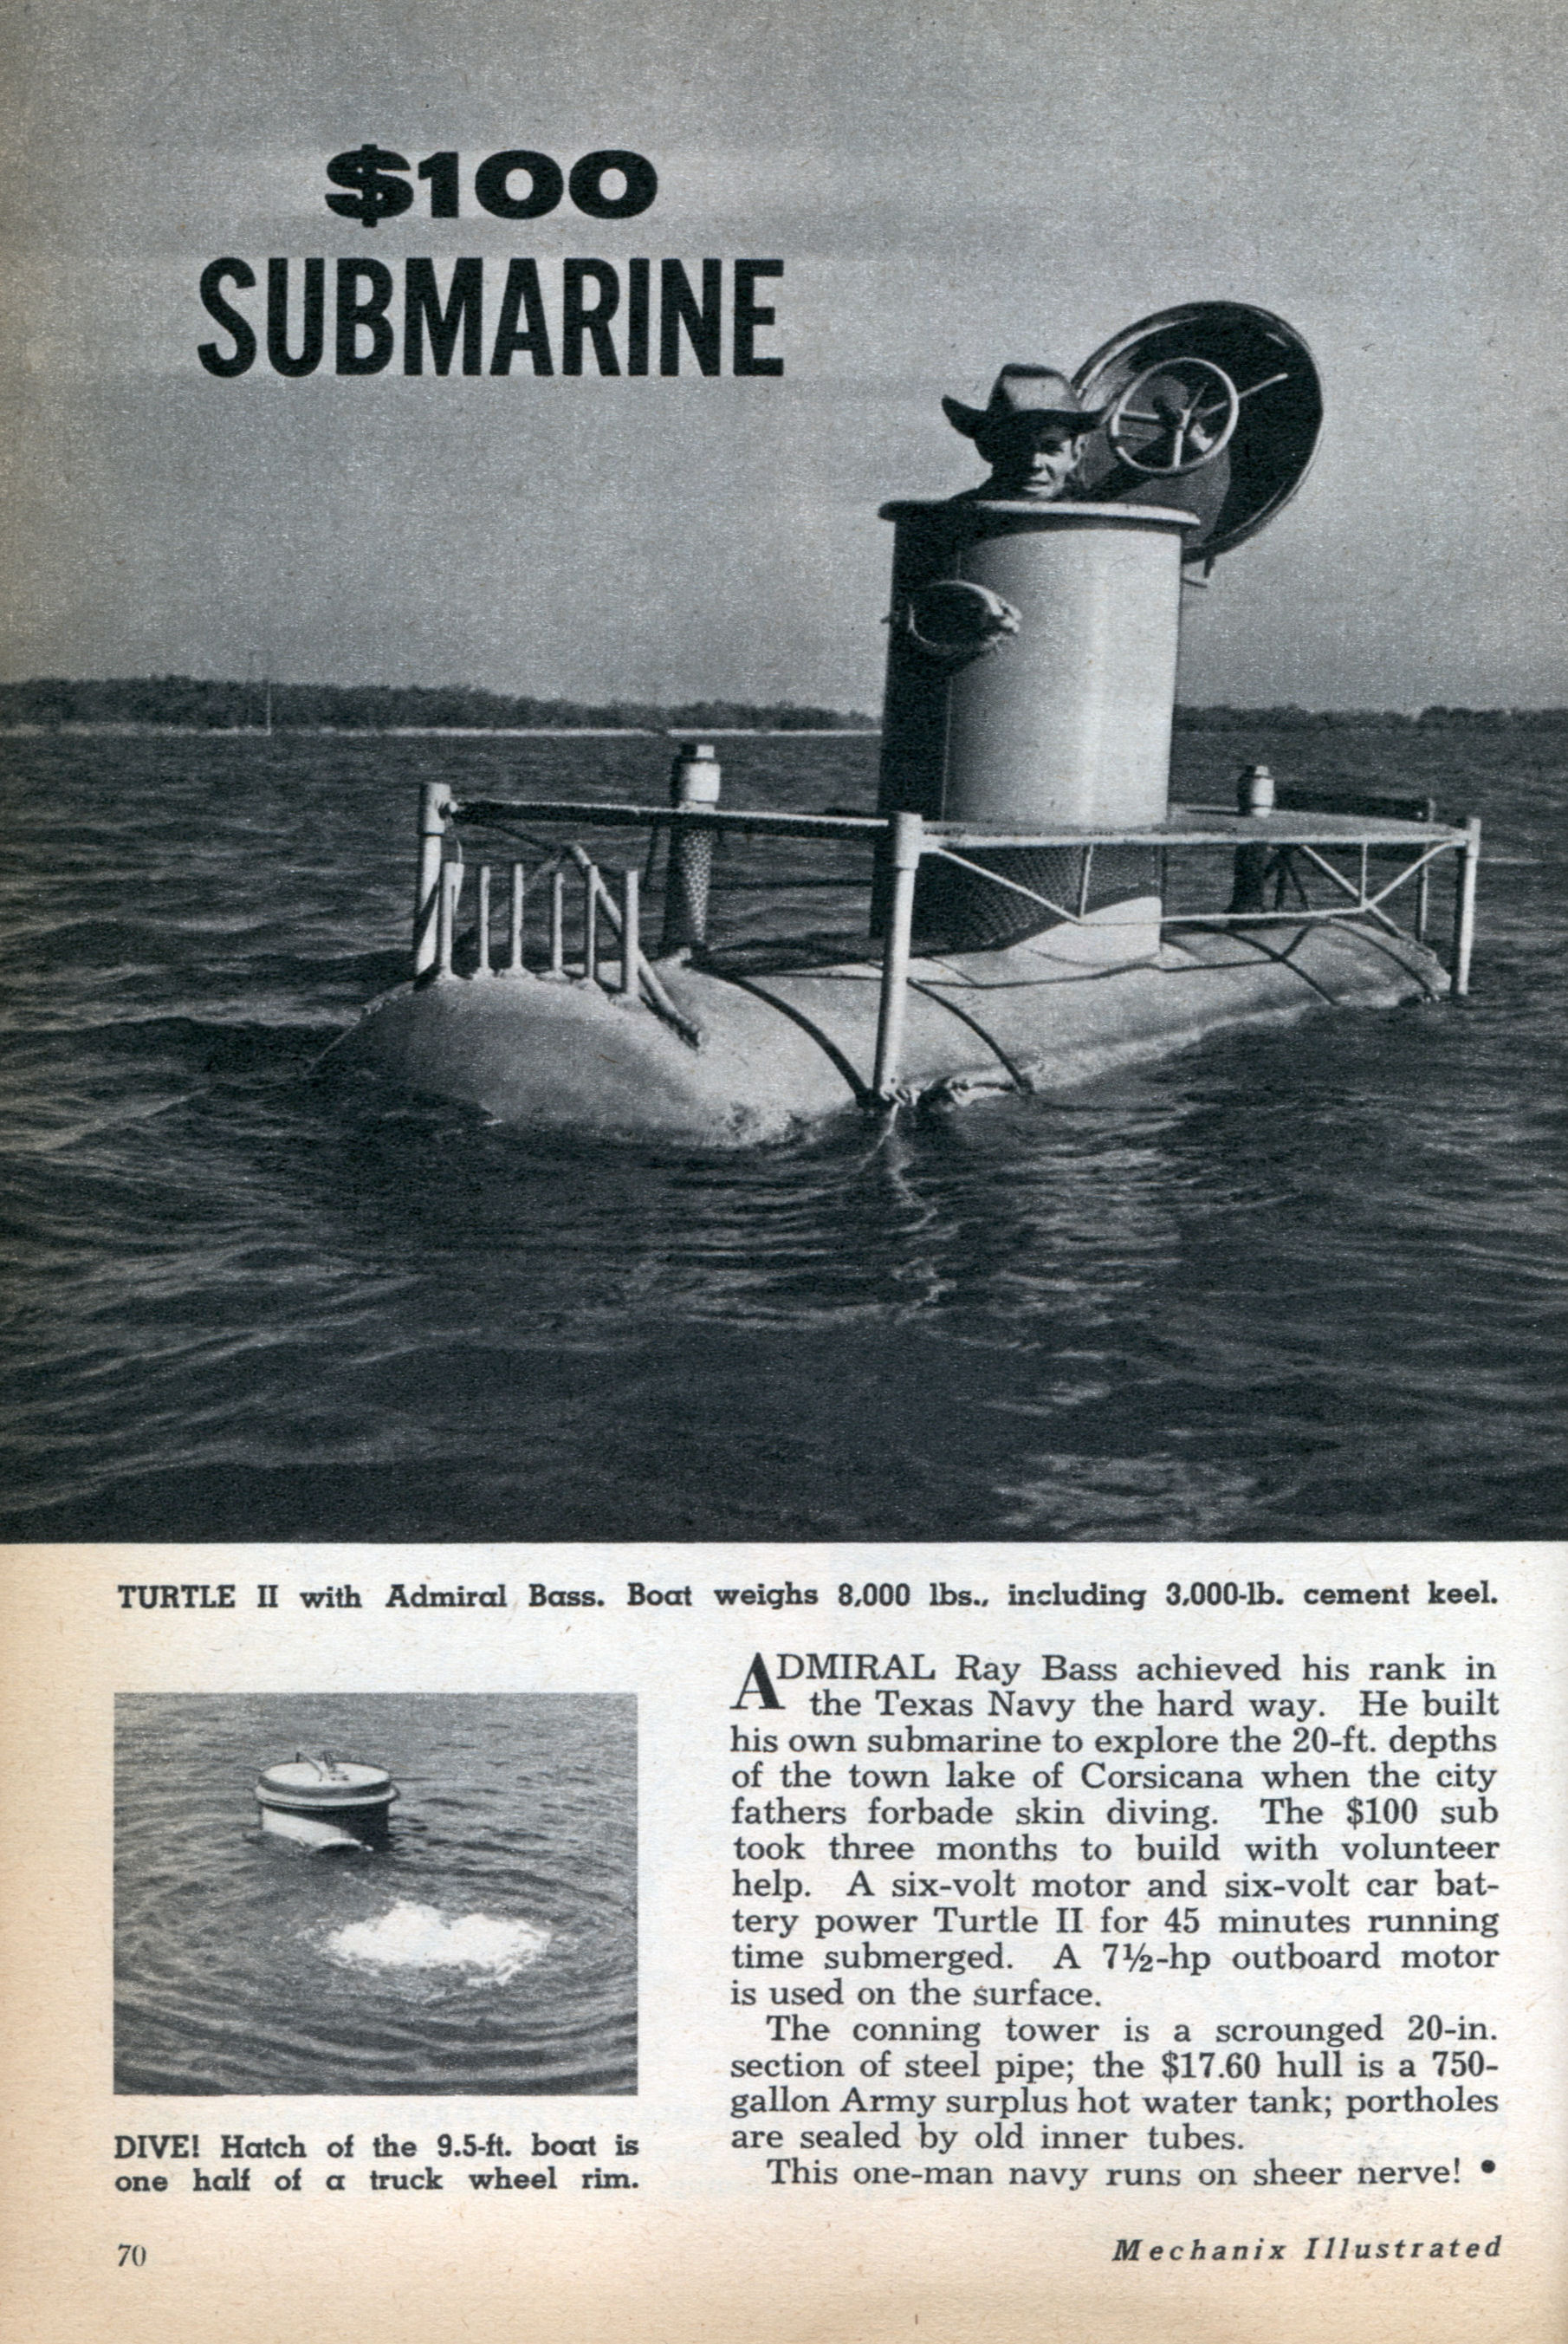 $100 SUBMARINE | Modern Mechanix on gunboat plans, homemade rvs from bus, homemade backhoe, duck boat plans, homemade duck boat blinds, type xxi u-boat plans, moonshine still plans, homemade tank, homemade swimming ponds, homemade boat windshield, homemade campers, periscope plans,